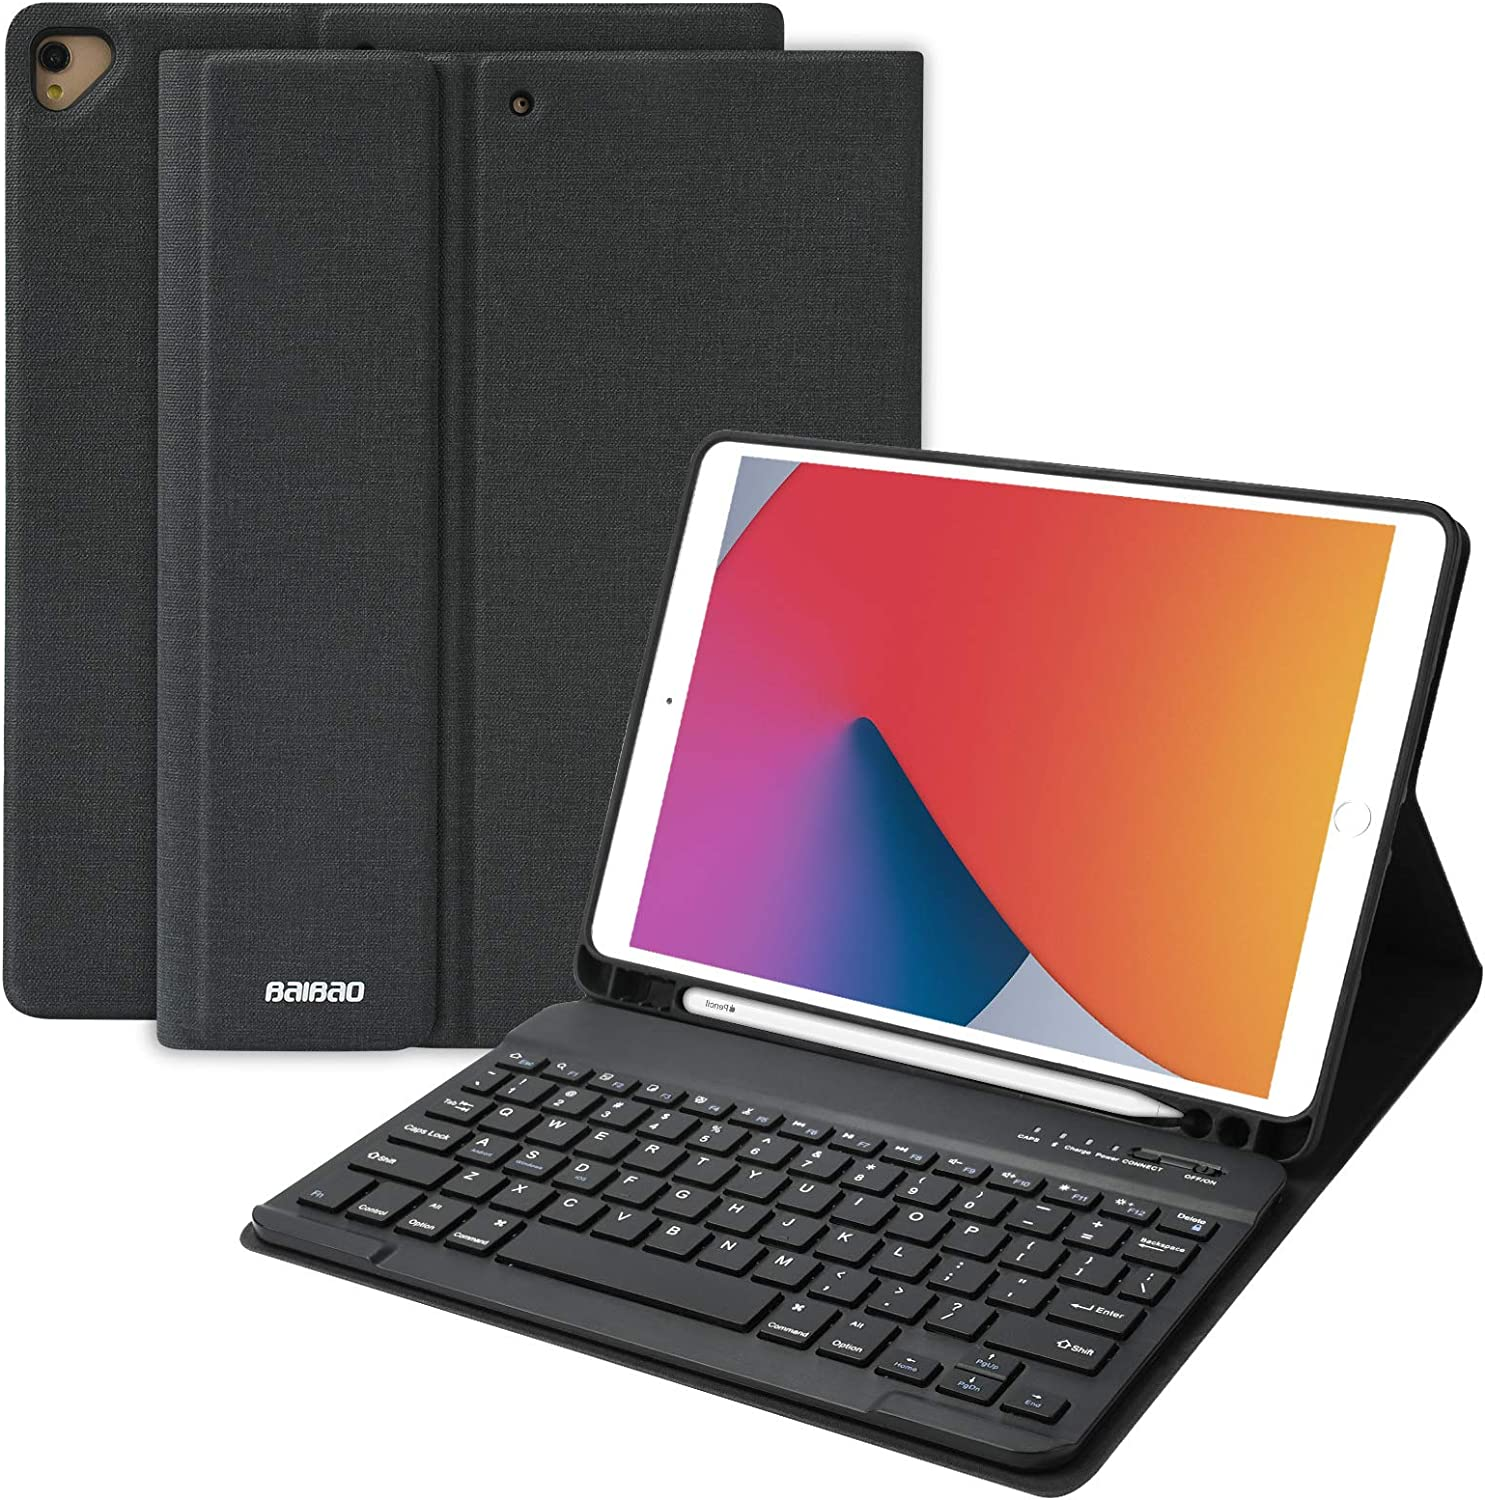 iPad 8th Generation Keyboard Case for iPad 10.2 Inch 2019,iPad Air 3 10.5 2019 Keyboard Case,iPad Pro 10.5 2017 Case with Keyboard, with Detachable Wireless Bluetooth Keyboard and Pencil Holder